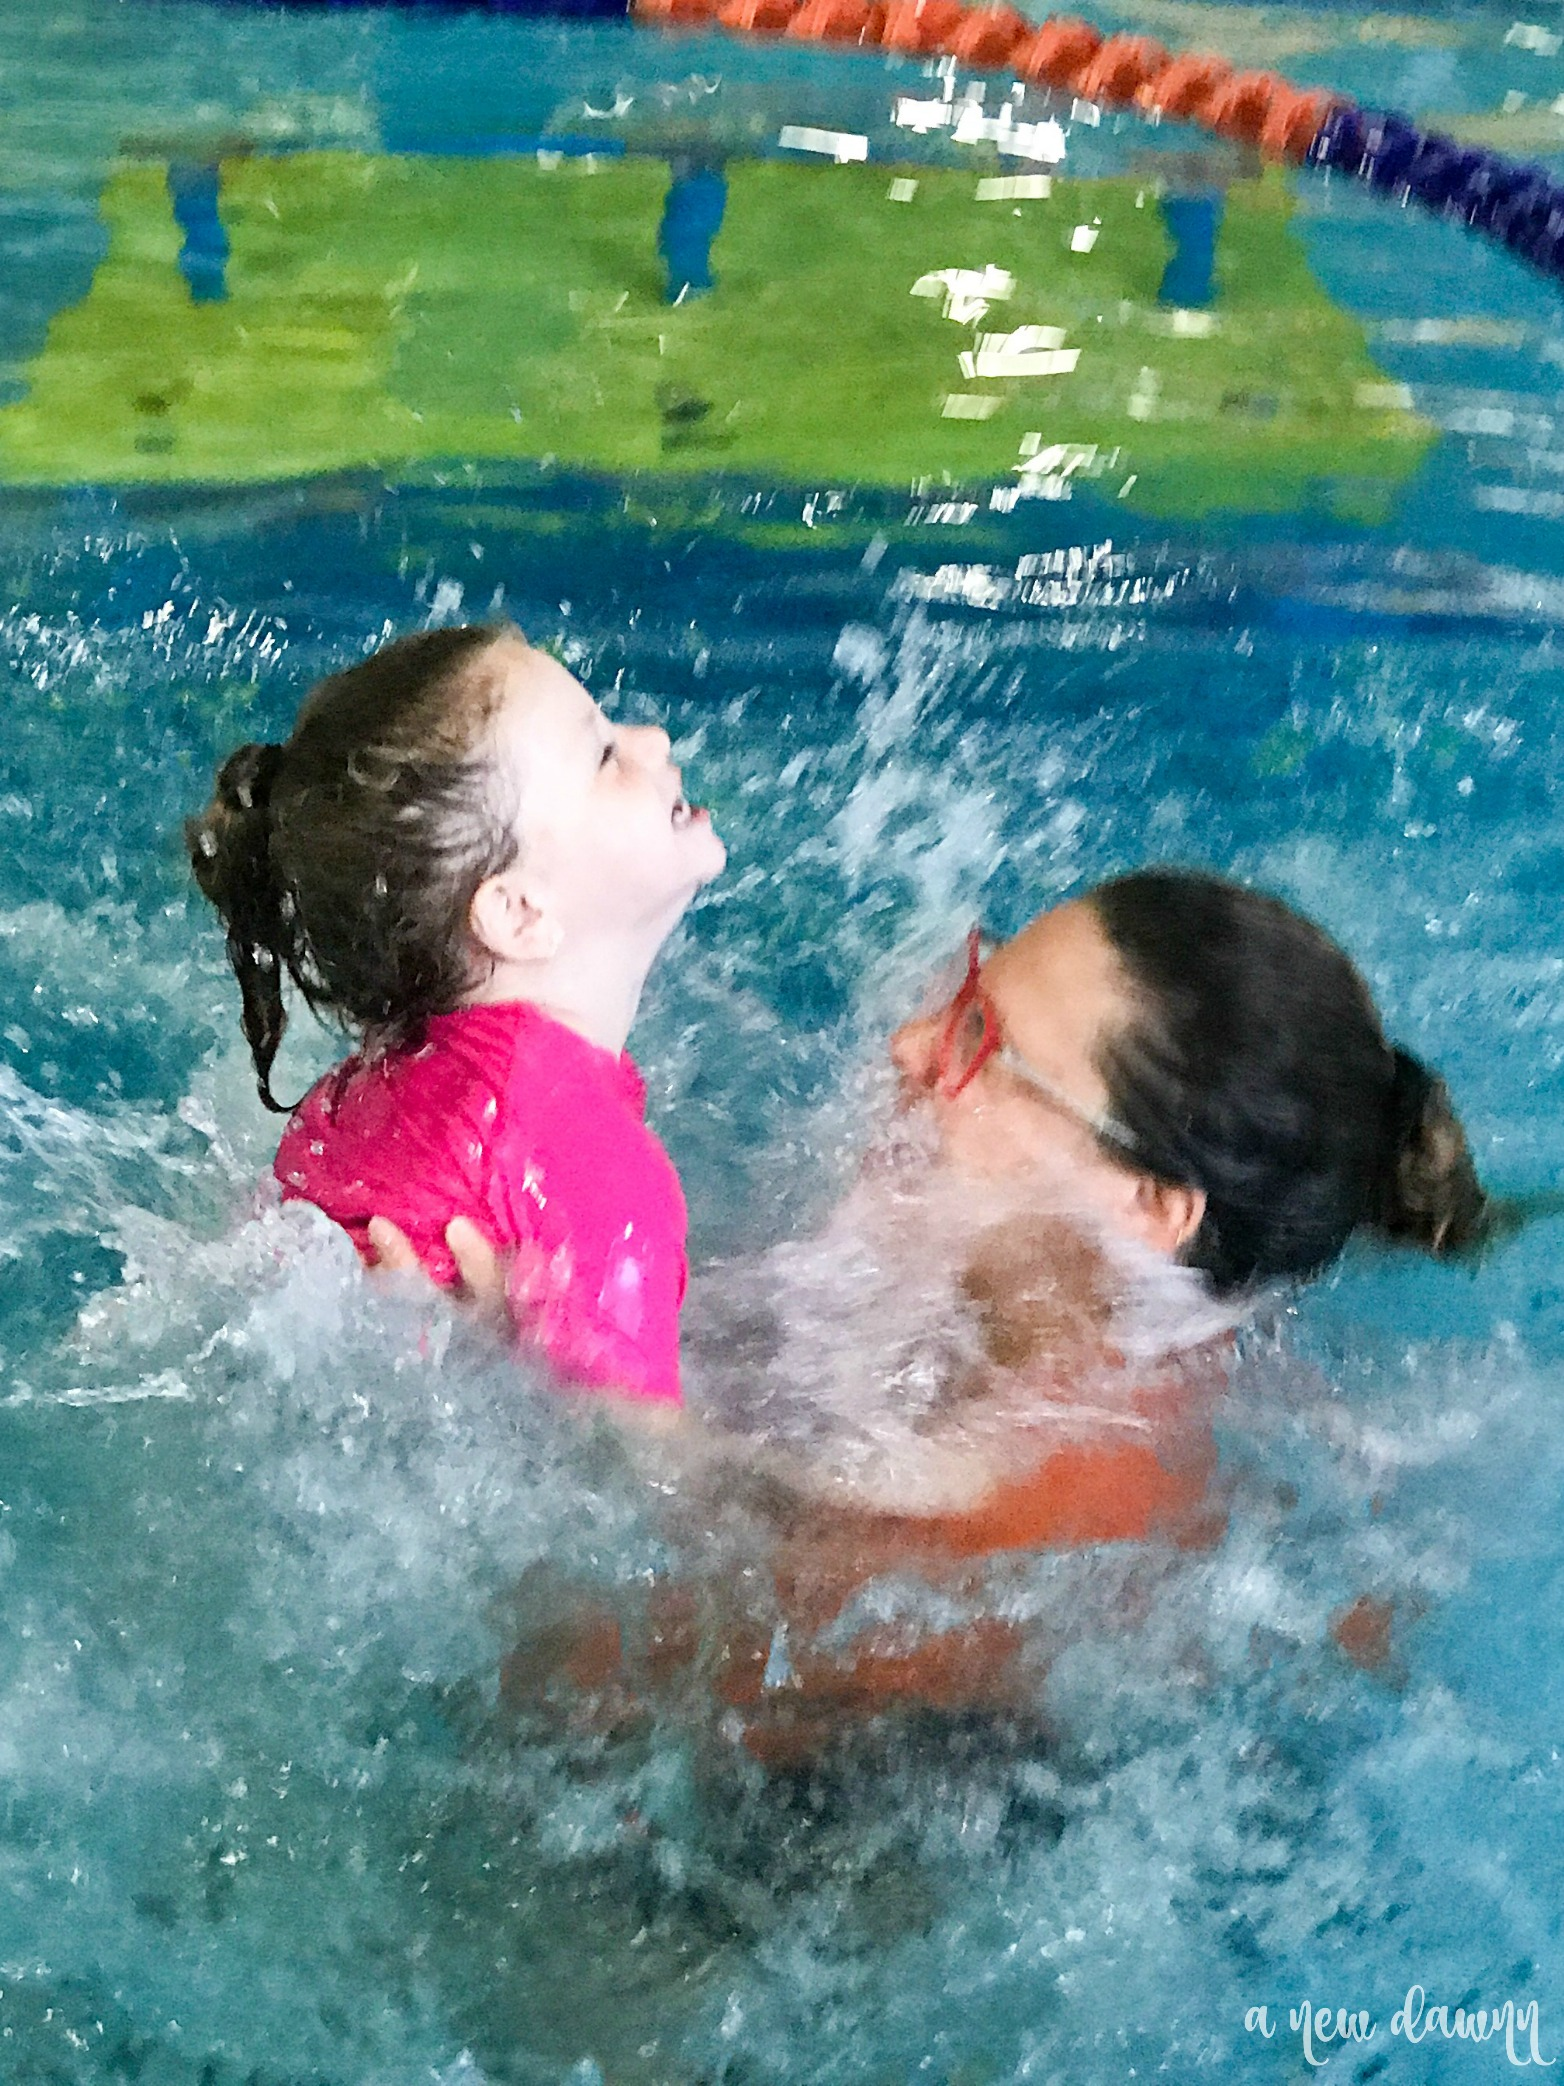 Splashing in the pool at Goldfish Swim School